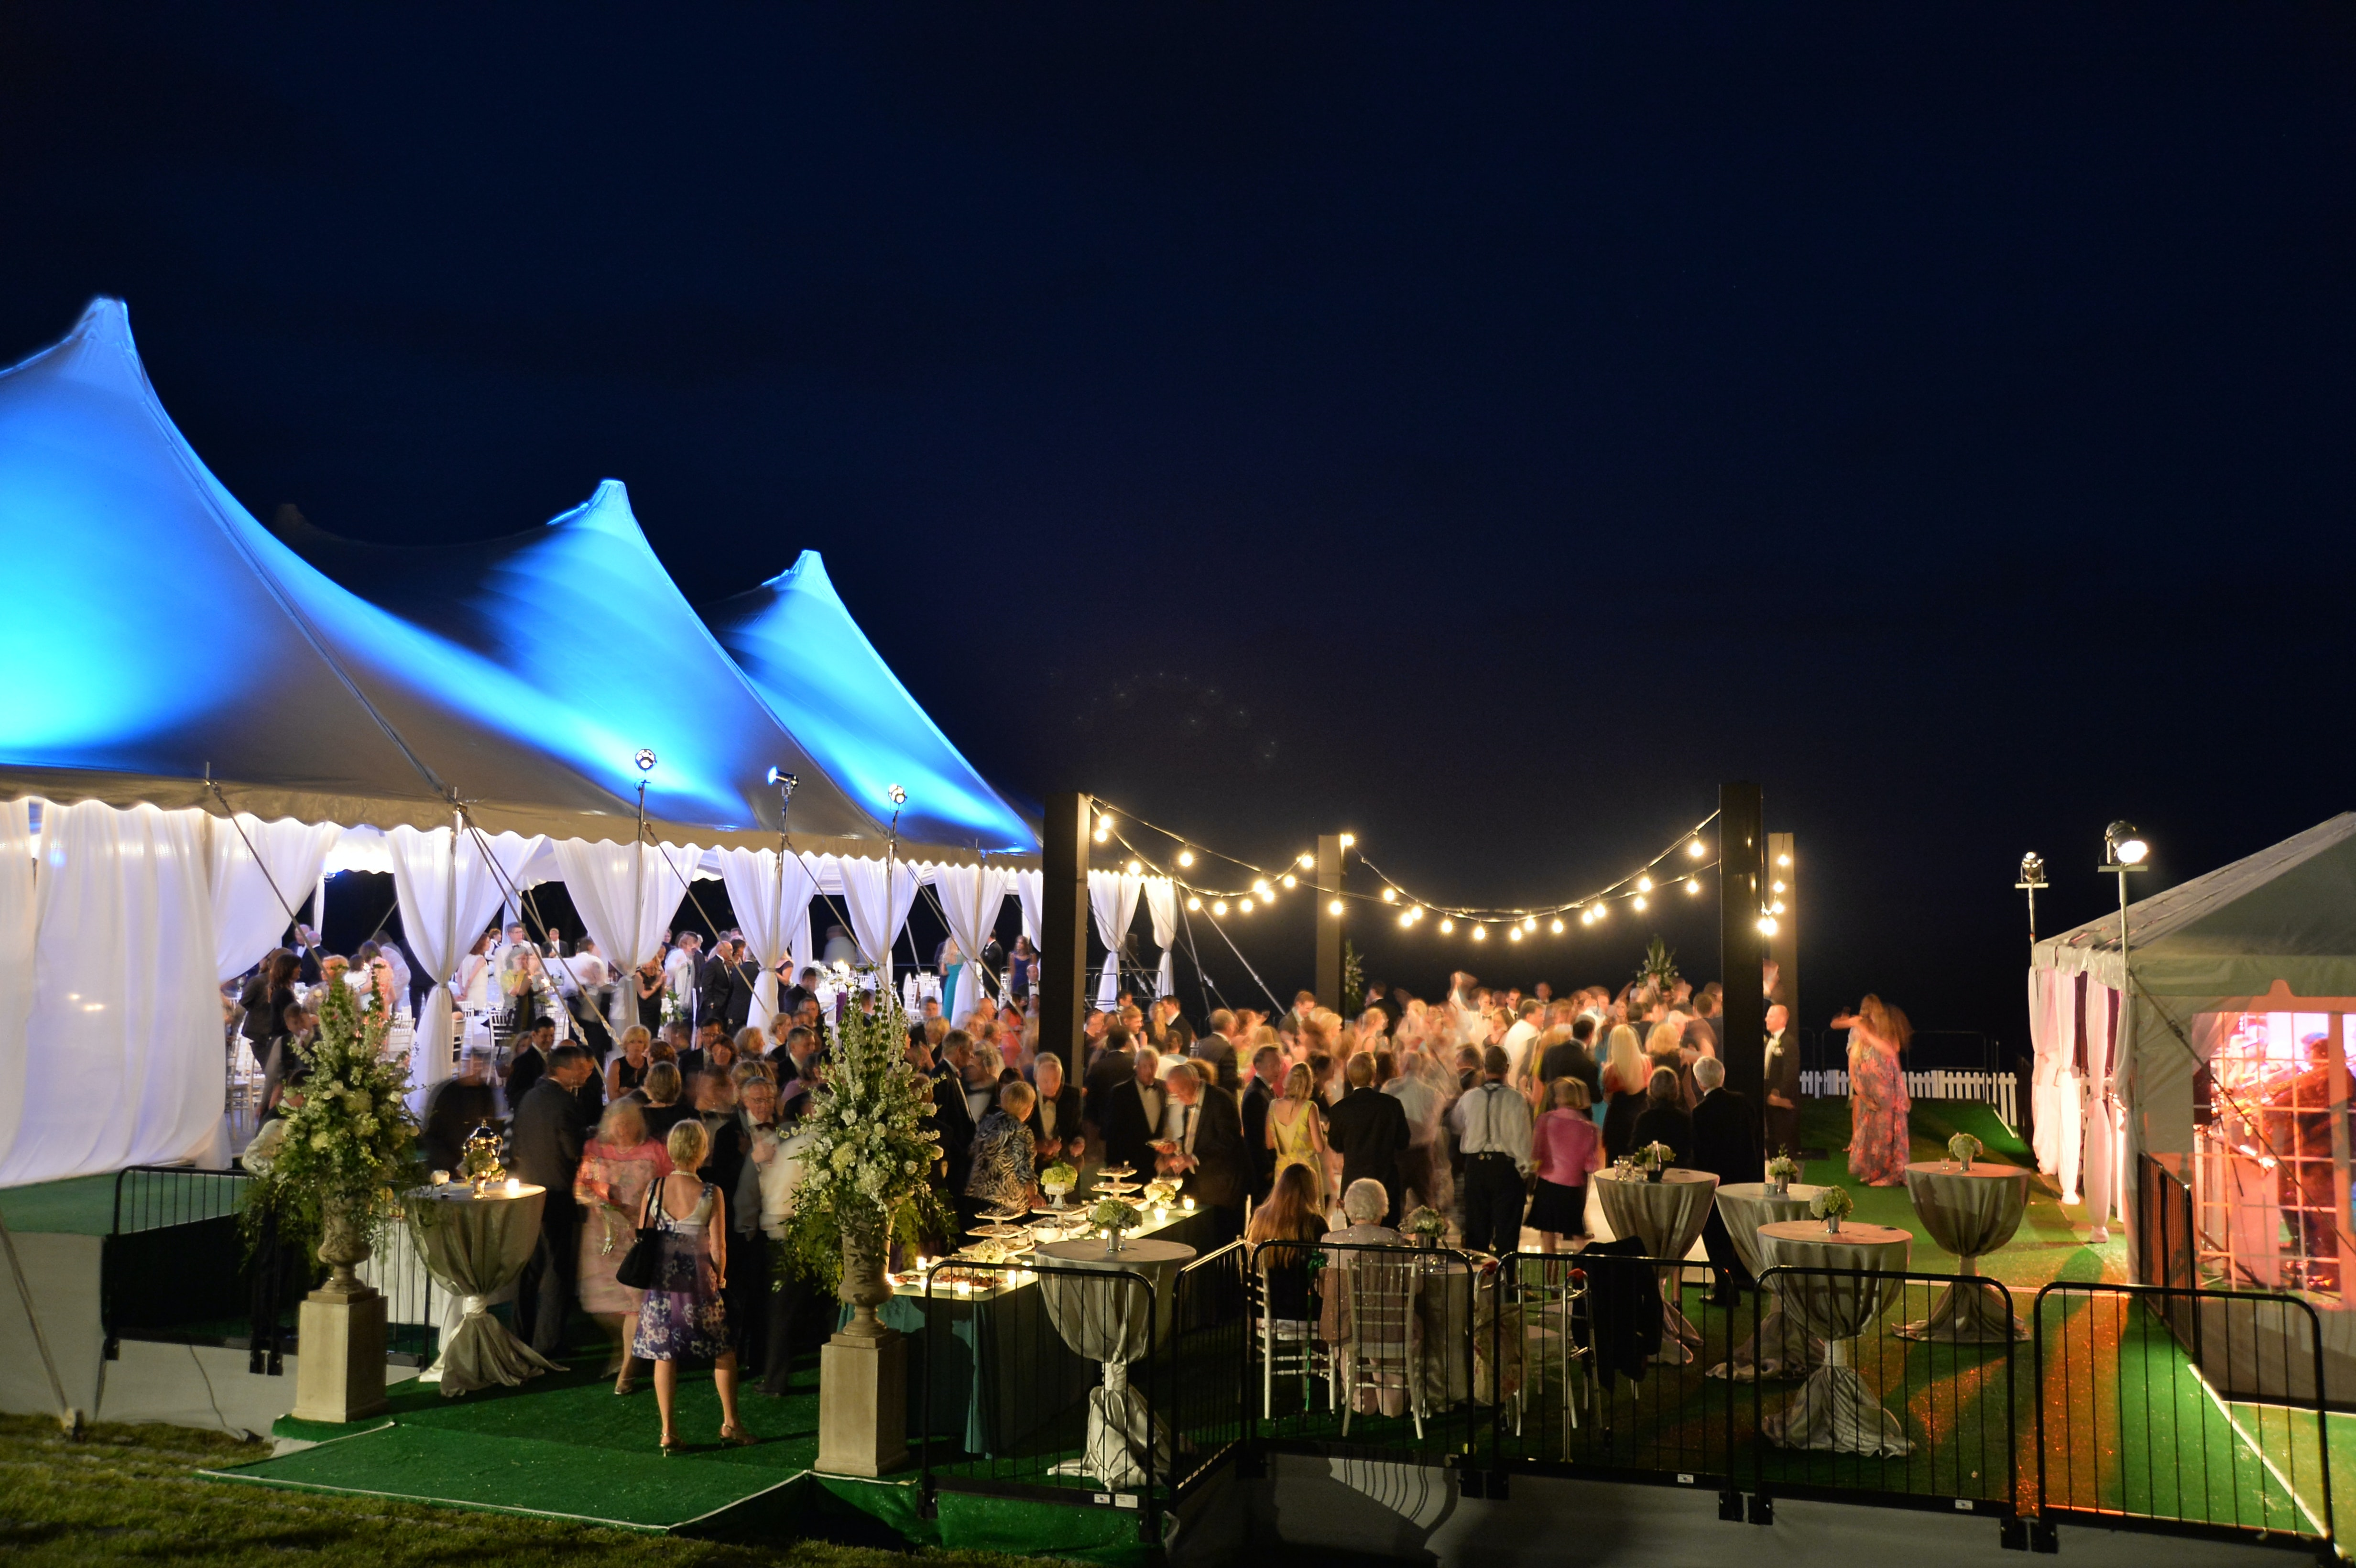 Photo Hosted By PartySlate & Canopies Events with Distinction - Rentals u0026 Linens - PartySlate